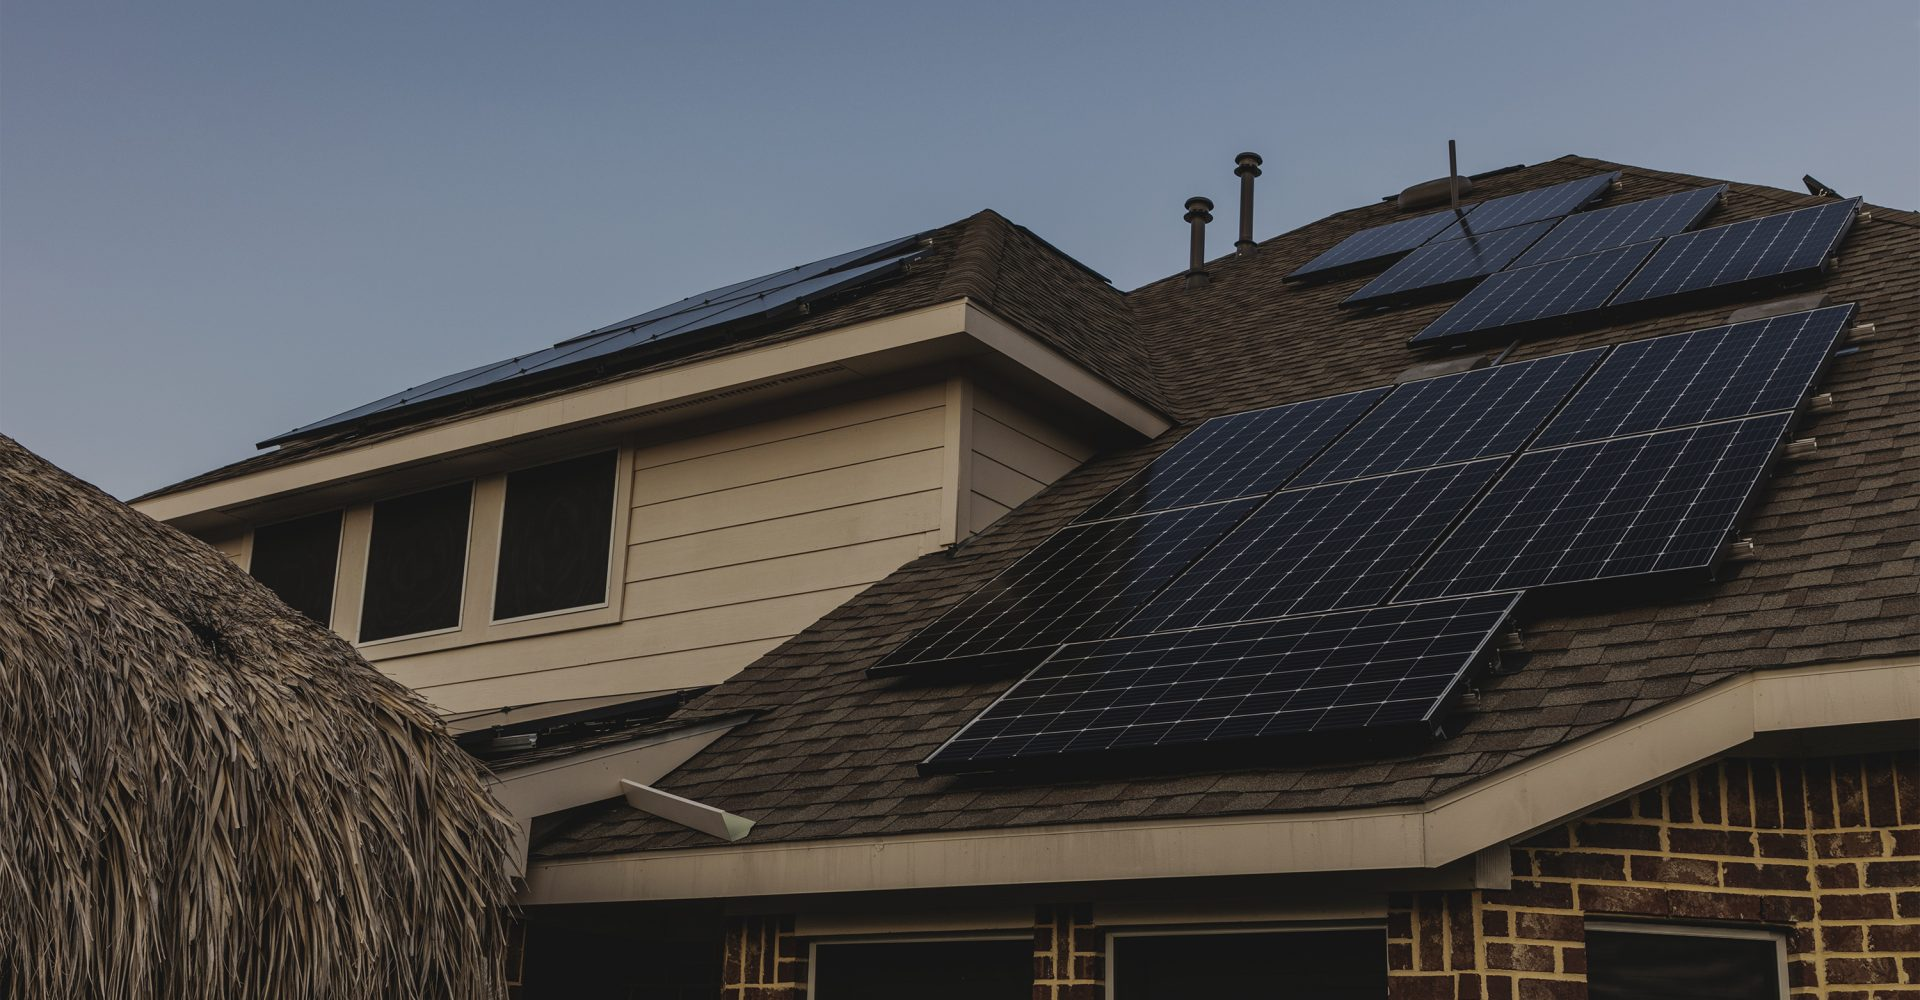 Solar Installer in Houston Texas Professionally Installed by Sunshine Renewable Solutions